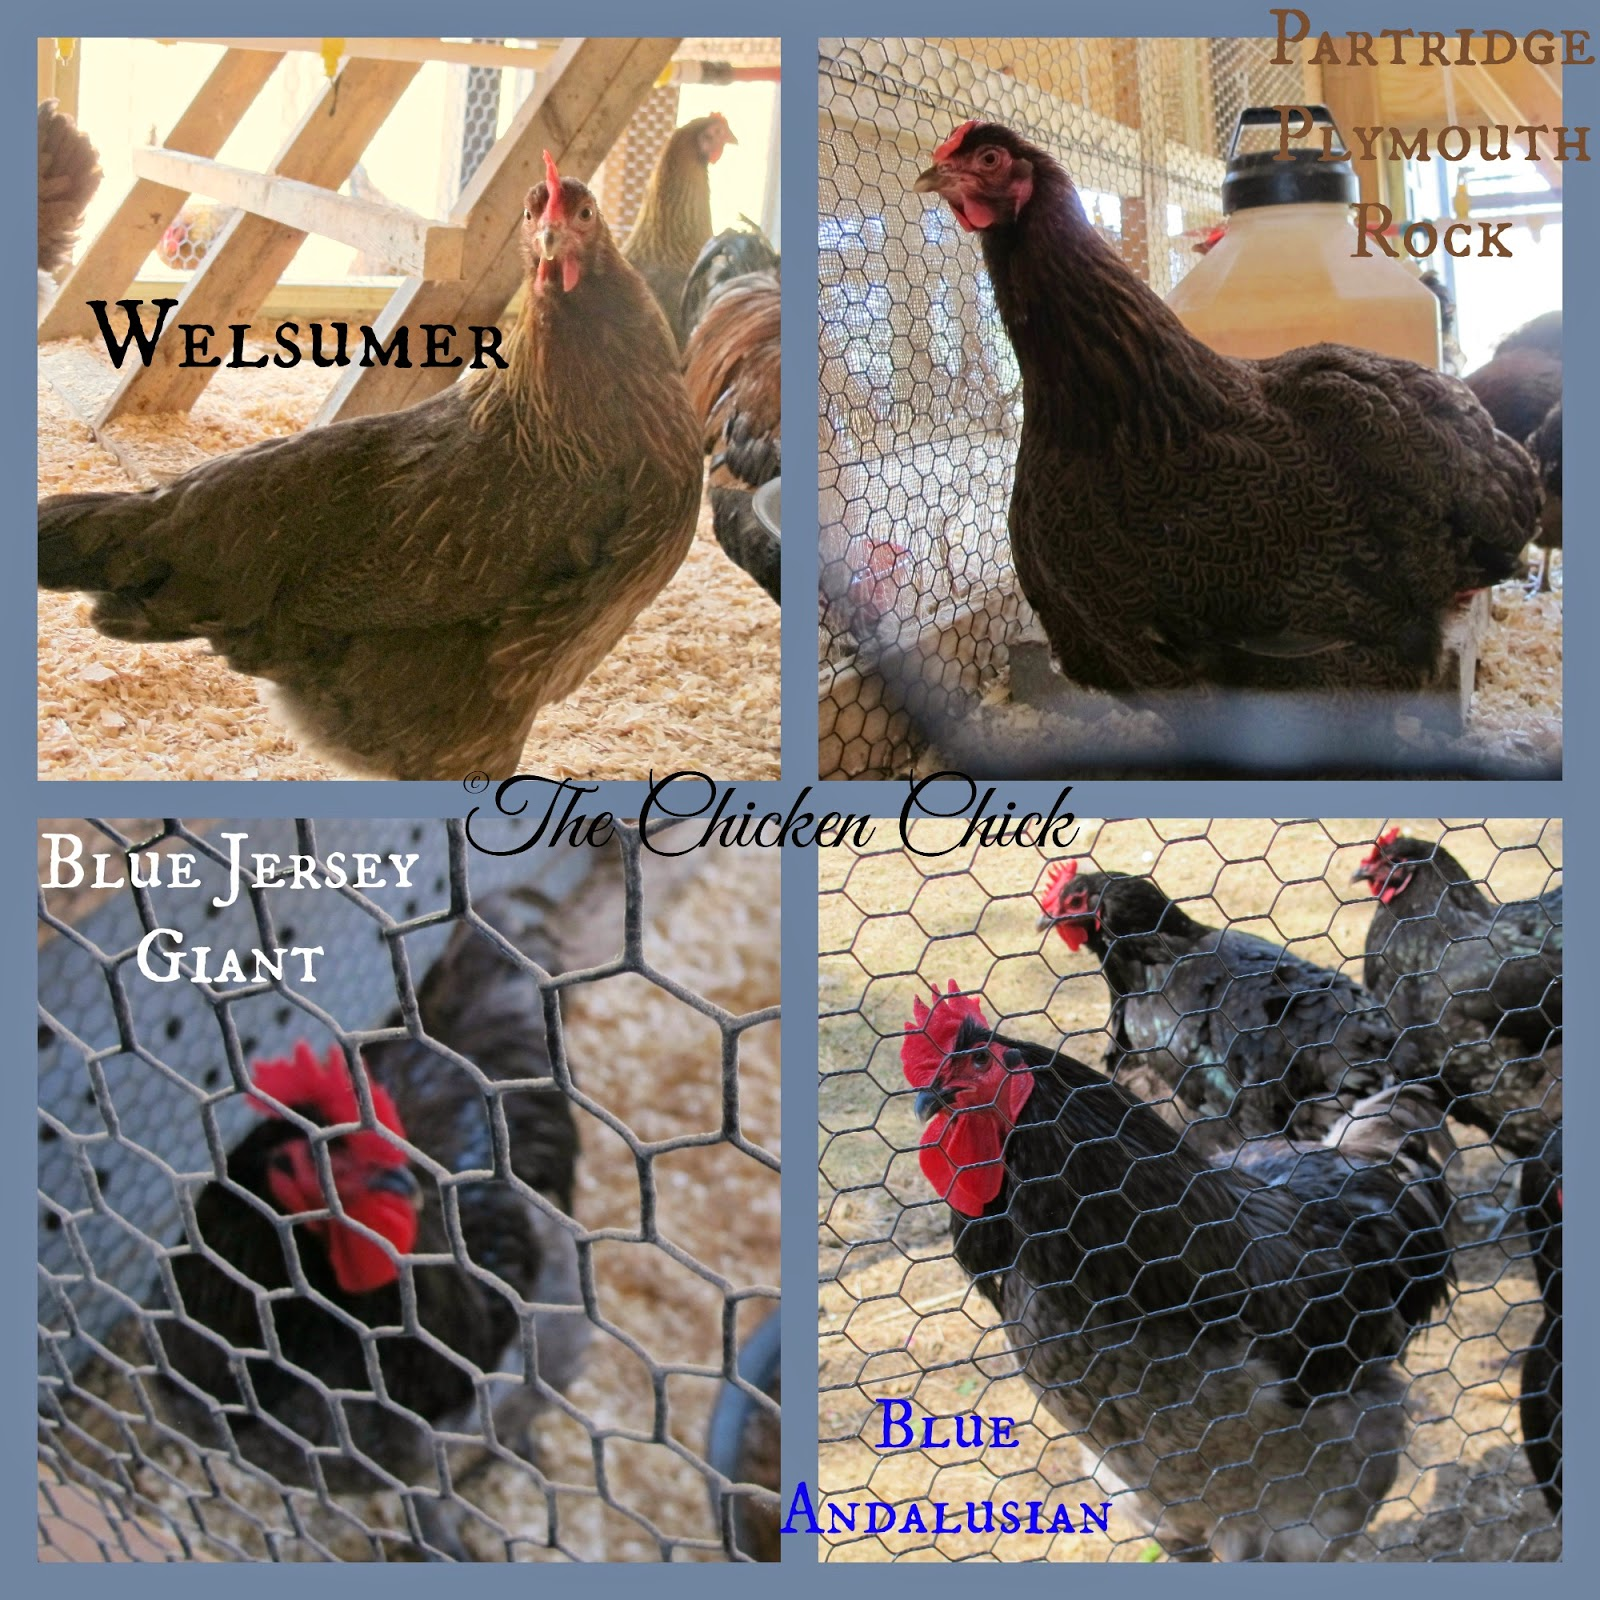 Heritage Chicken Breeds at P Allen Smith's chicken barn: Welsumer, Barred Plymouth Rock, Blue Jersey Giant and Blue Andalusian.